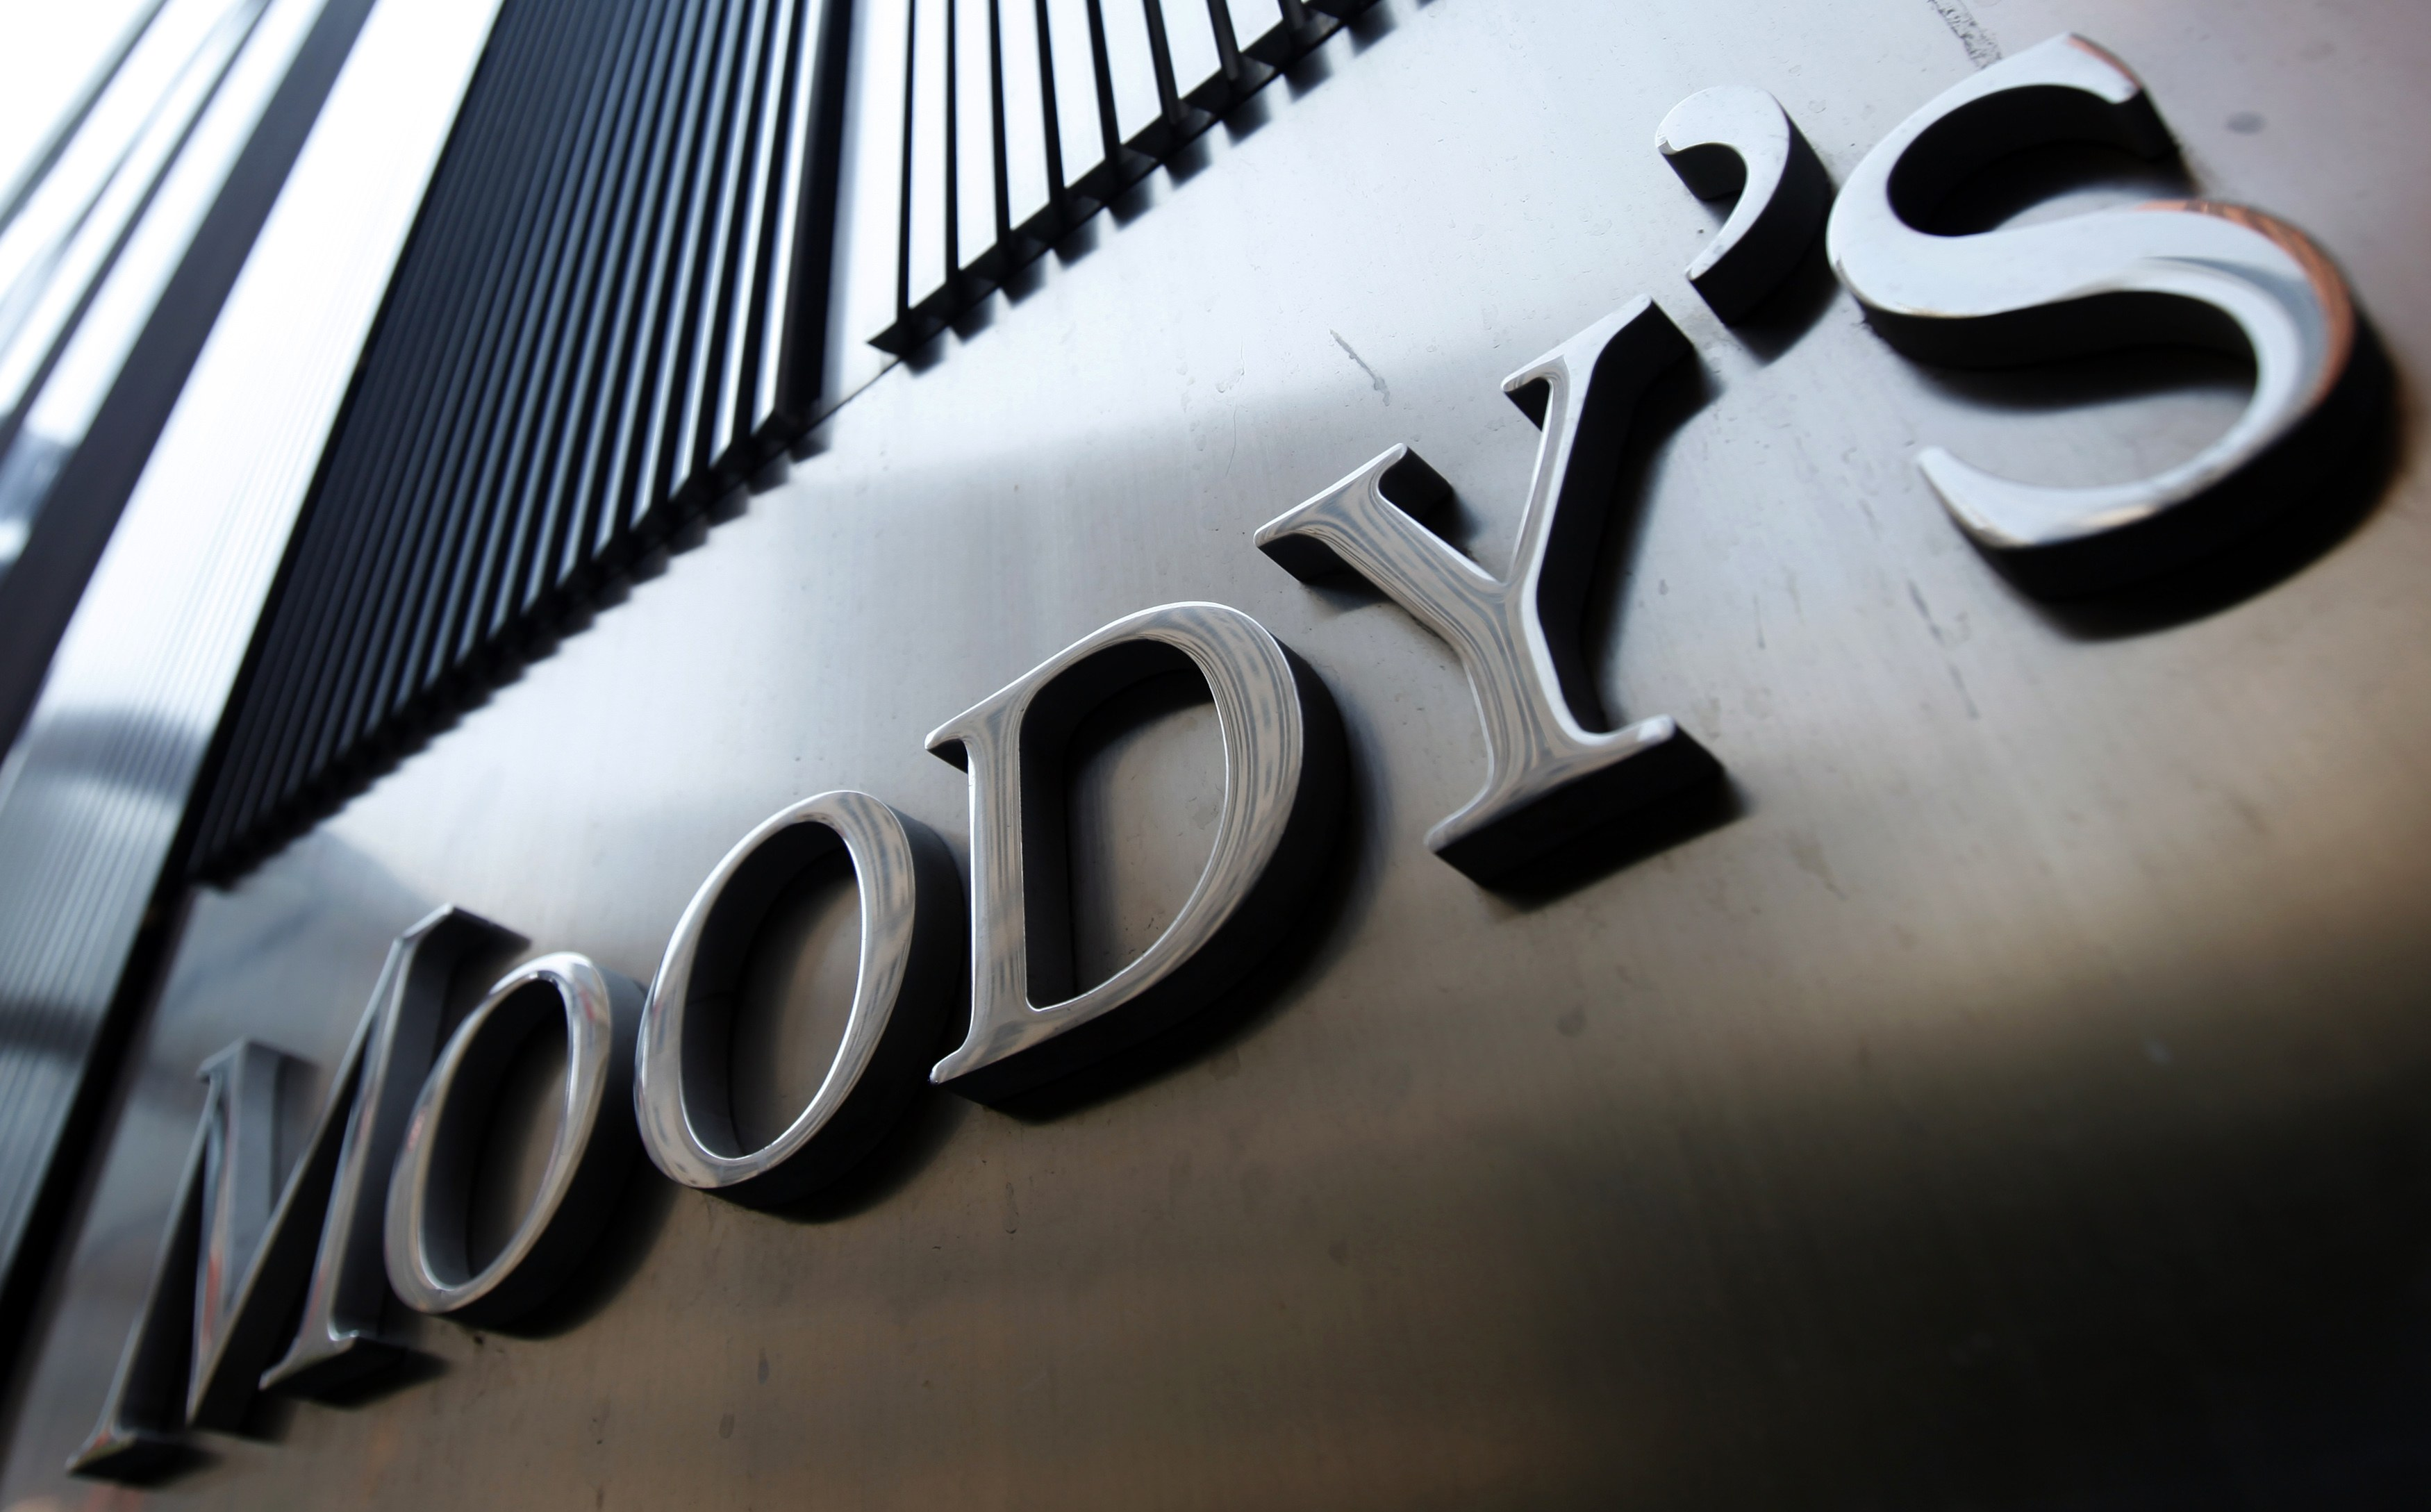 Moody's affirms B2 CFR of ex-Yugoslavia-focused Adria Midco